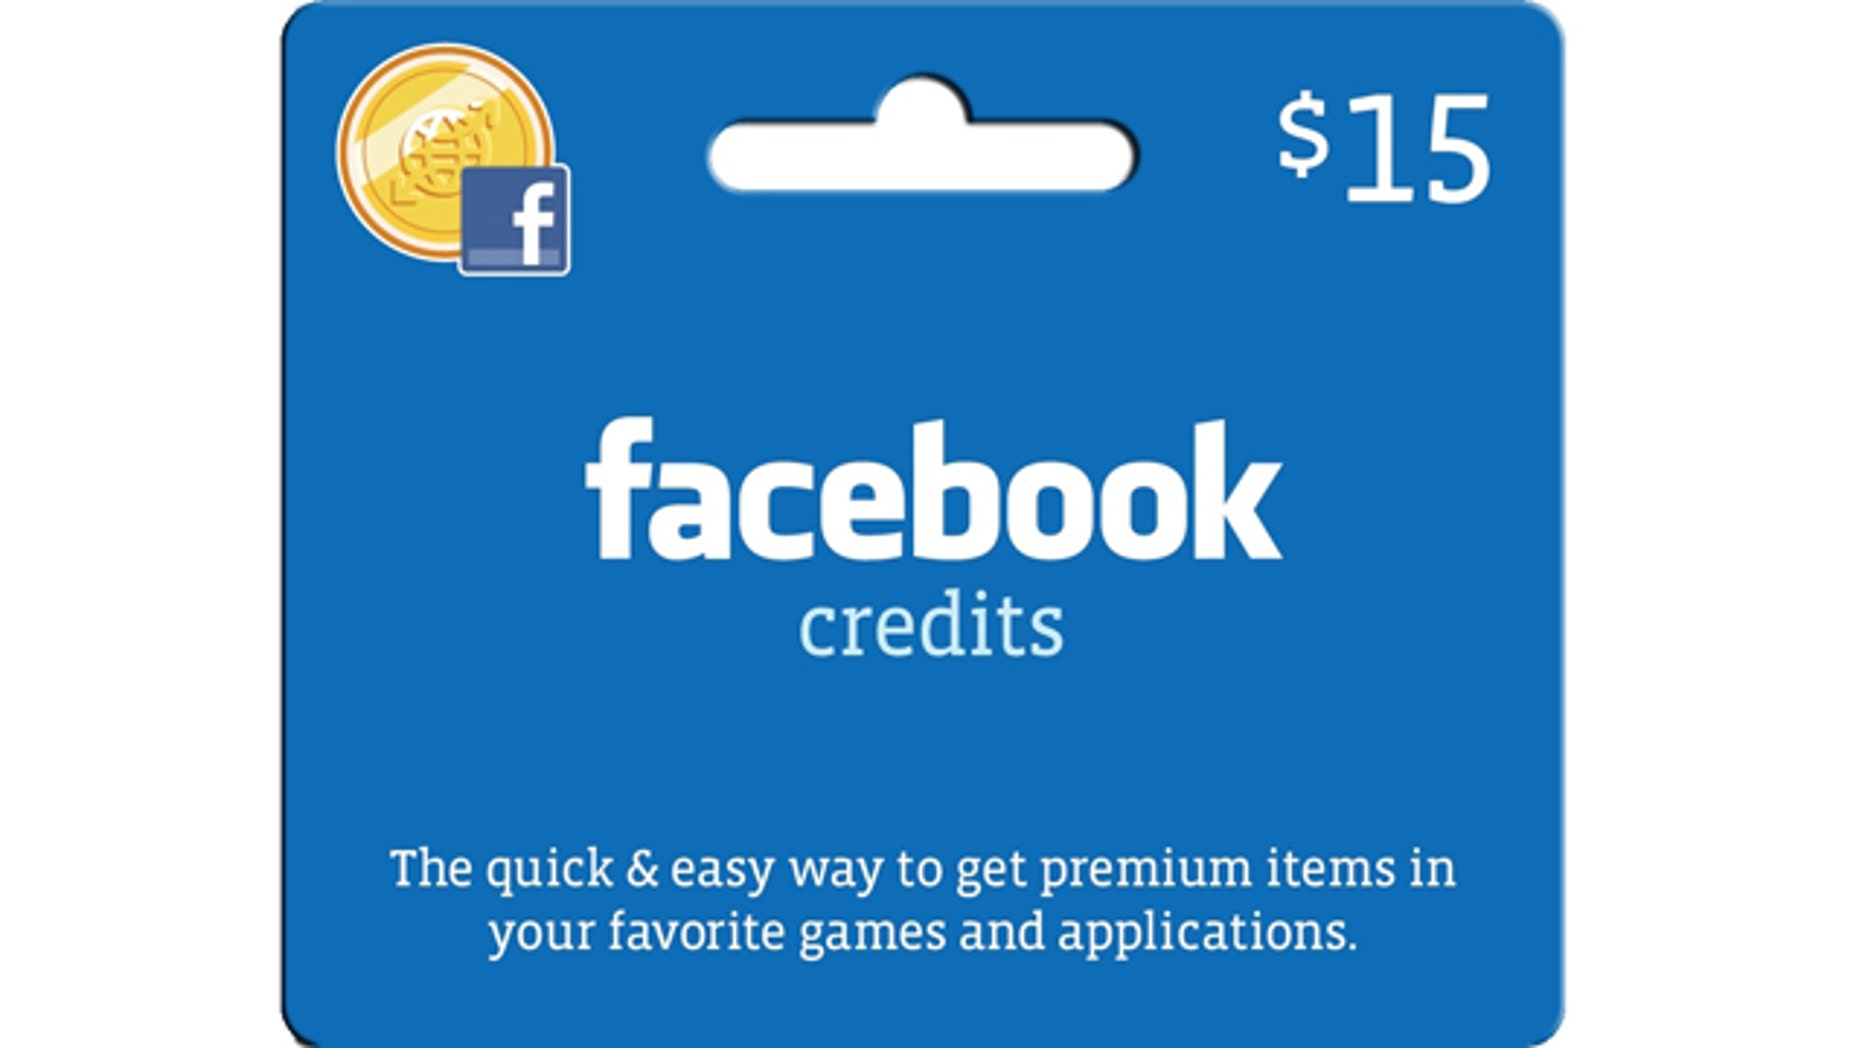 """Target stores will be the first retailer of """"Facebook Credits,"""" virtual currency for goods and services at the social network. The $15 Facebook Credits gift card was created exclusively for Target."""